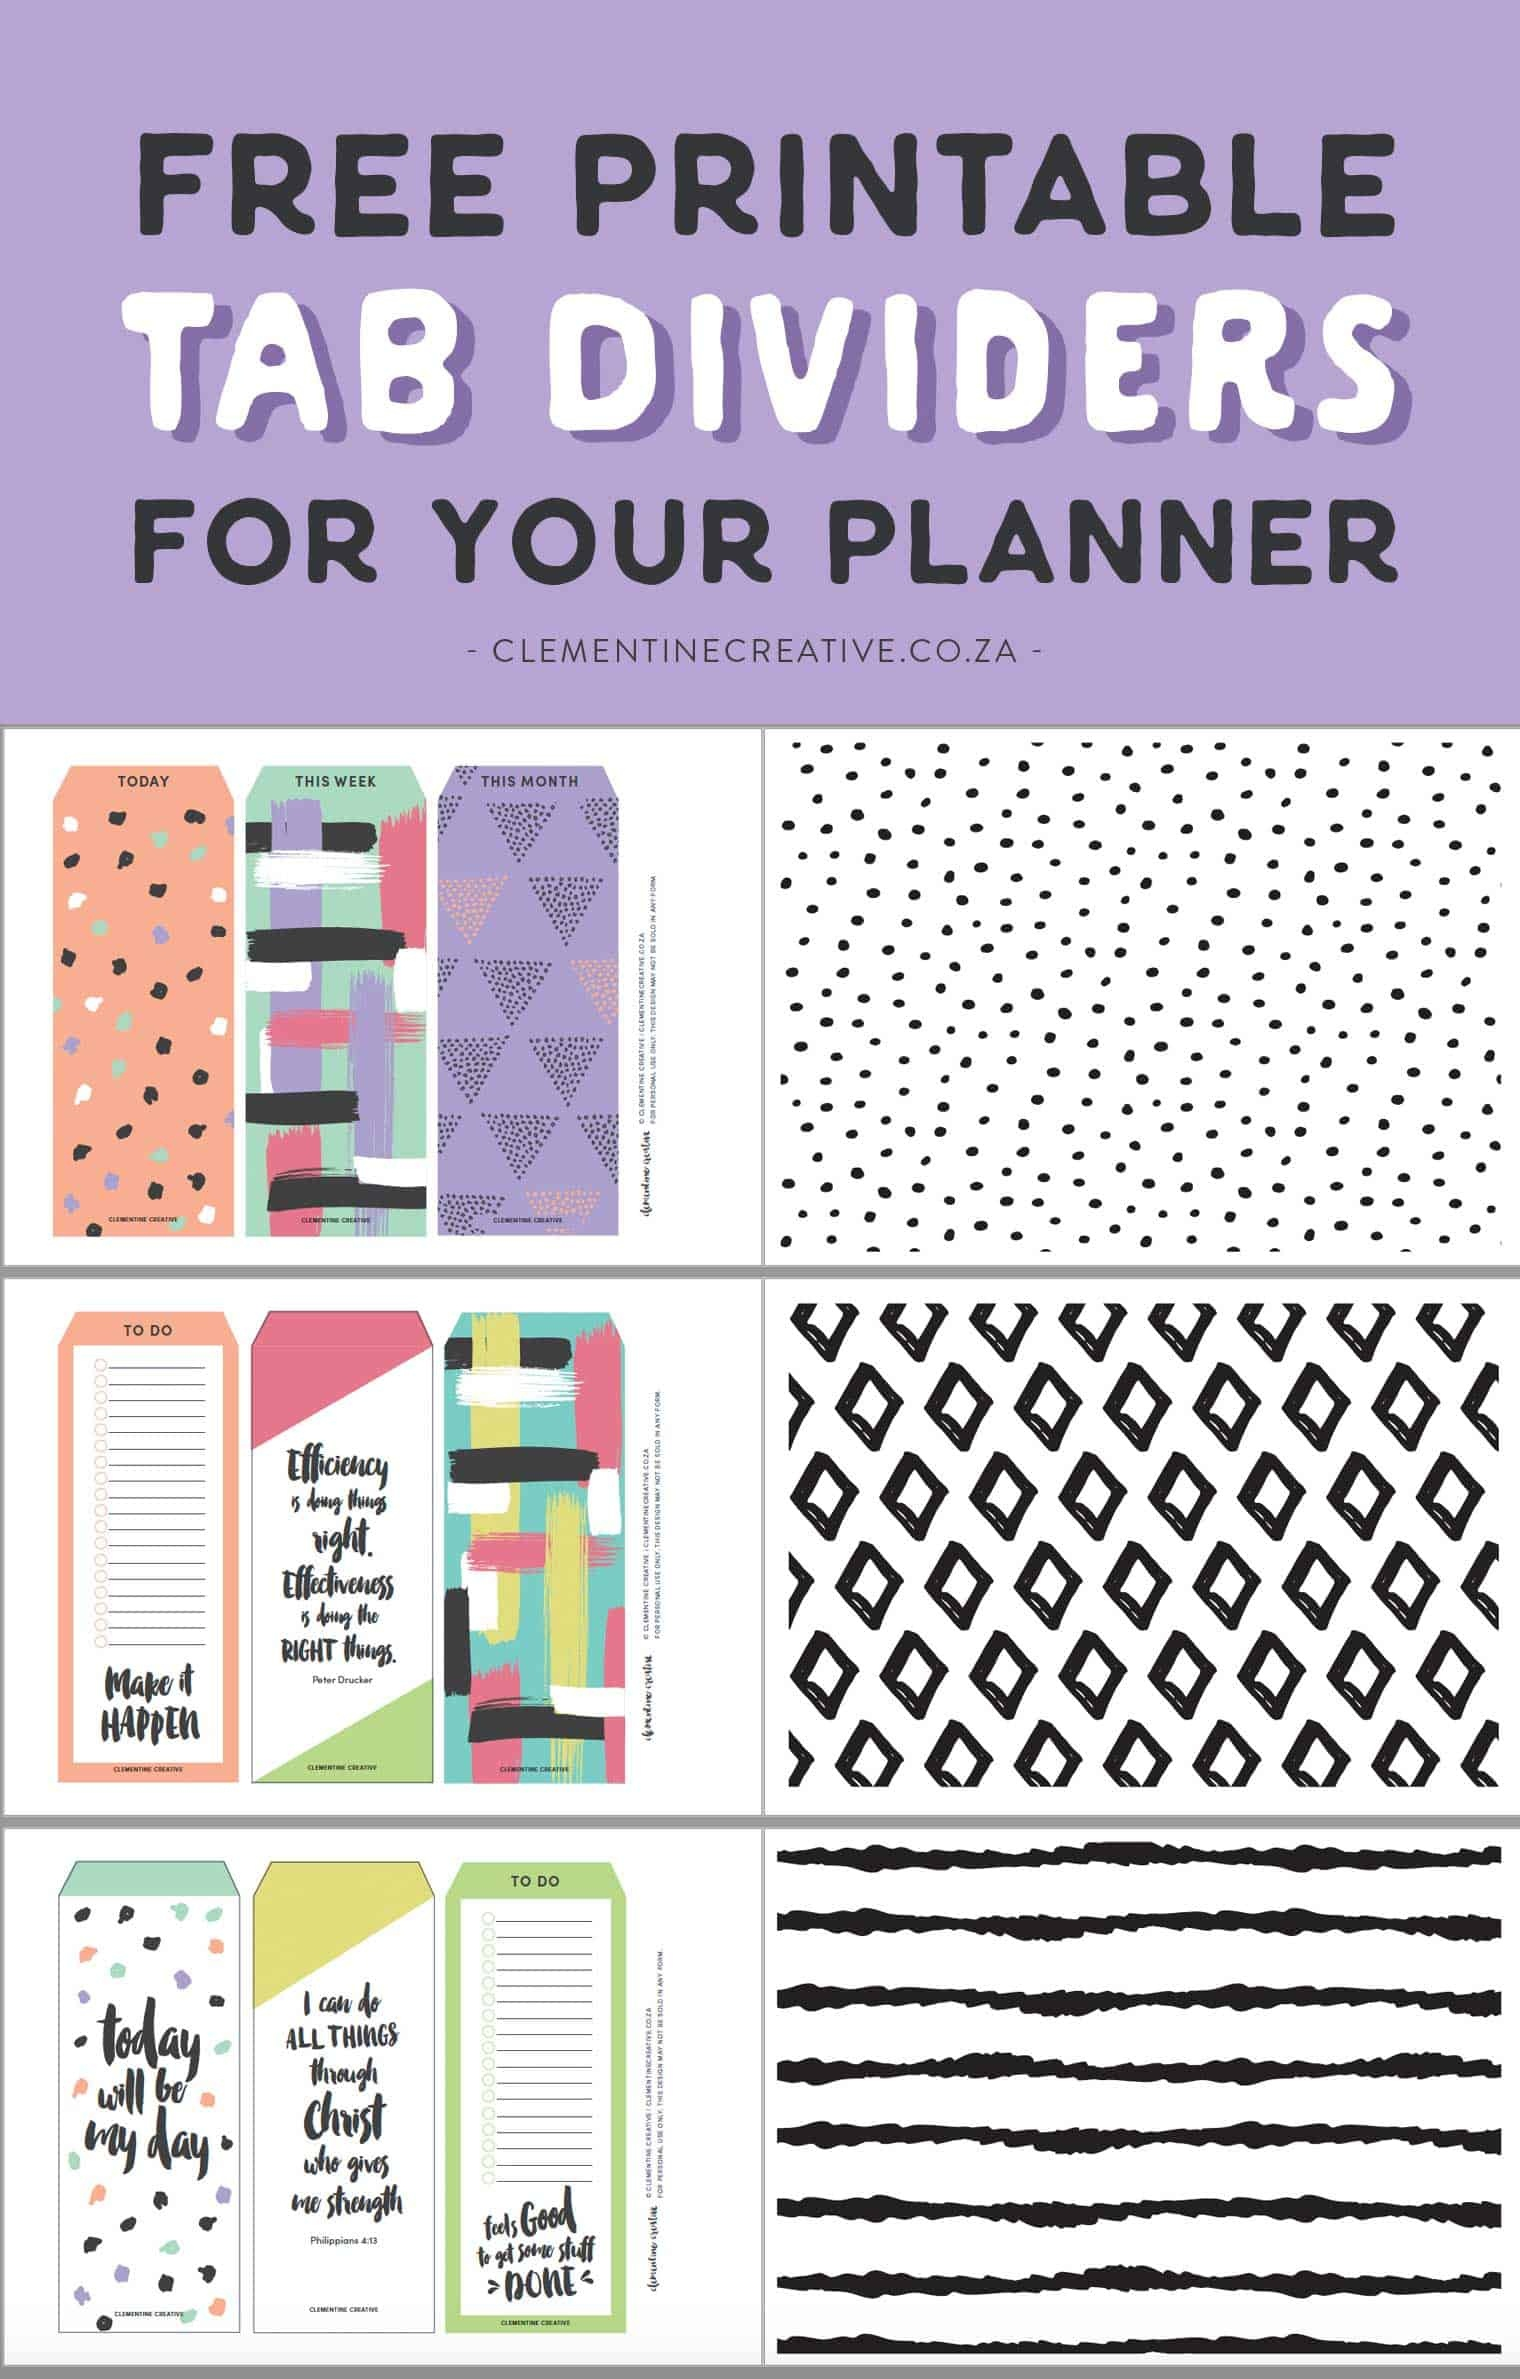 Free Printable Top Tab Dividers For Planners, Diaries And Agendas - Free Printable Dividers